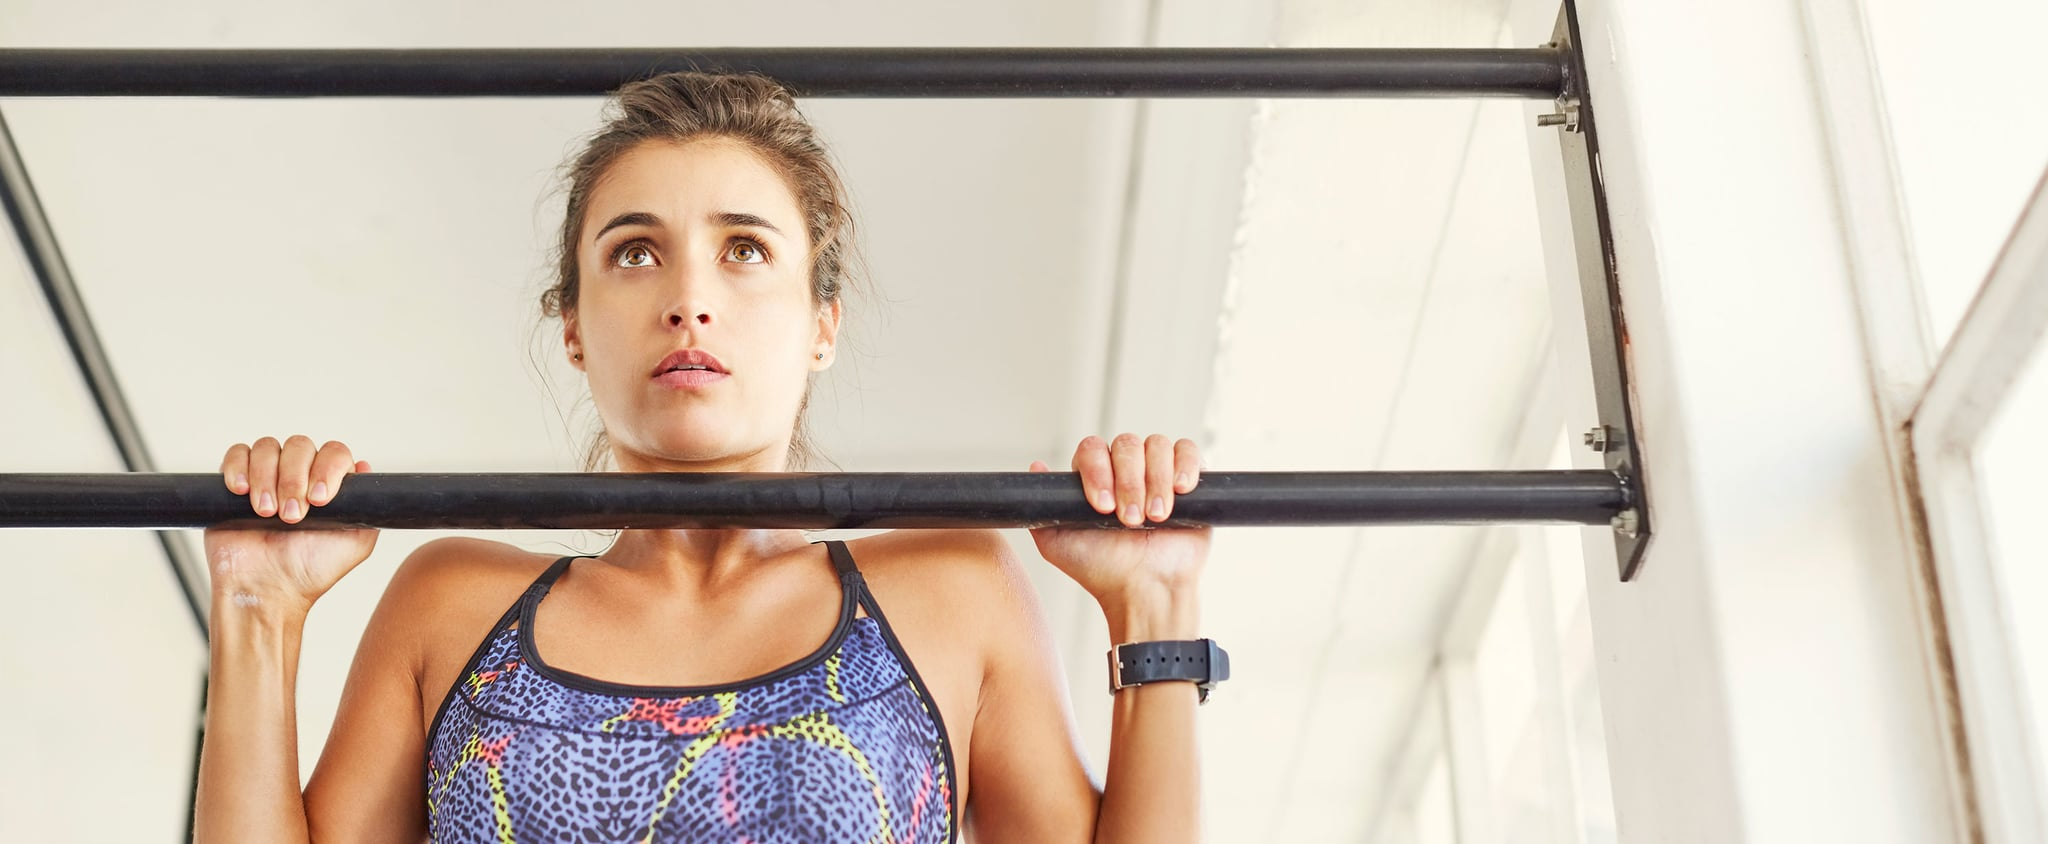 How to Do a Pull-Up Hold